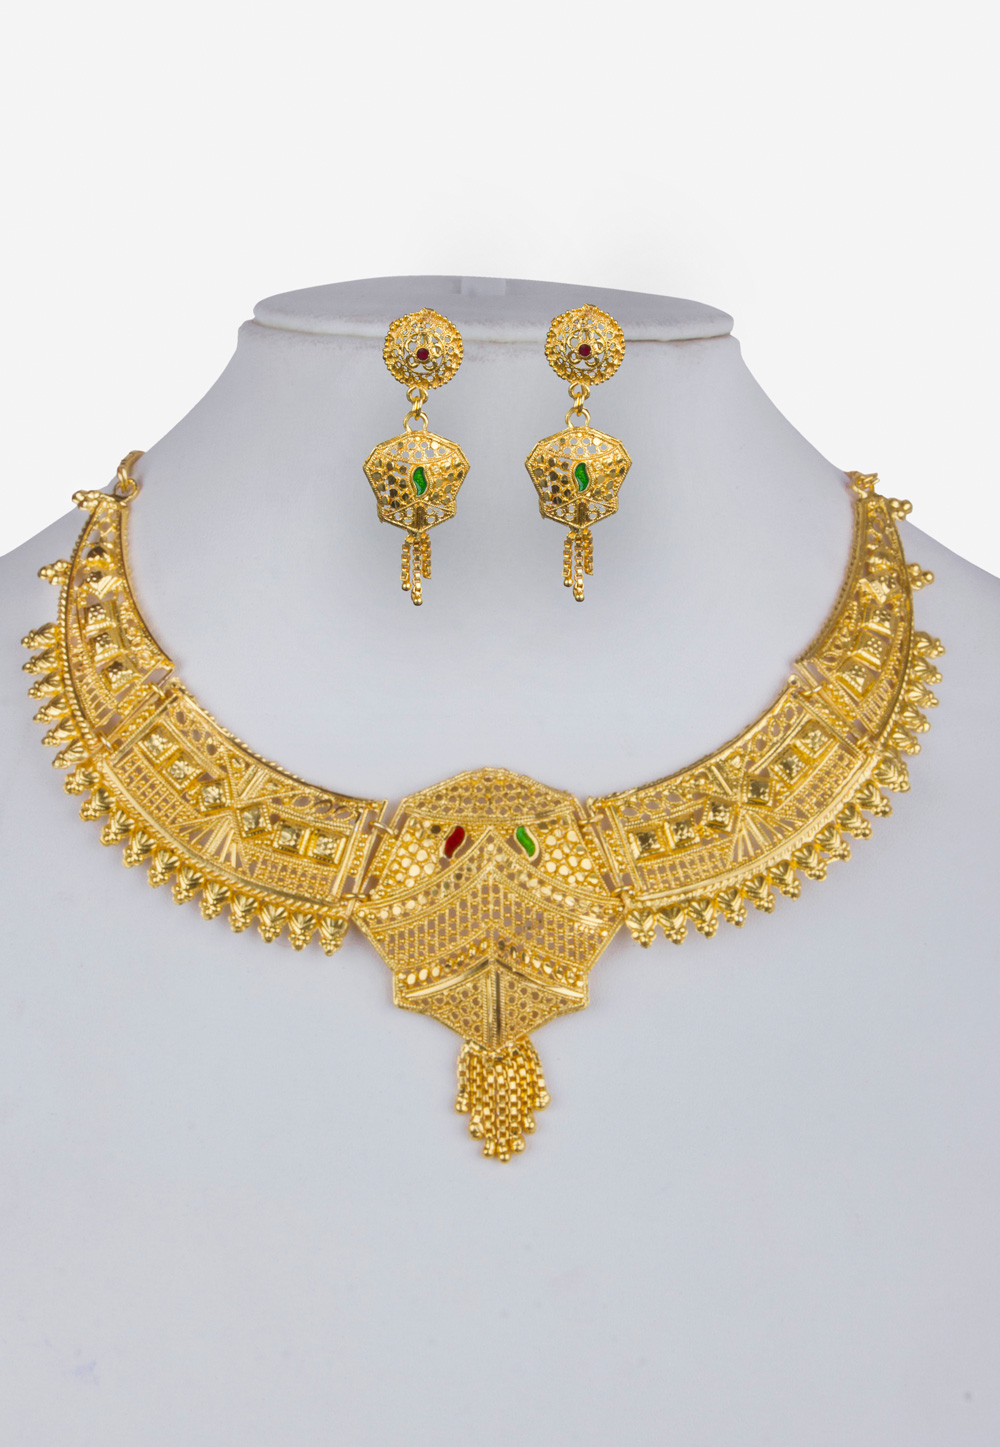 Golden Alloy Necklace With Earrings 157120